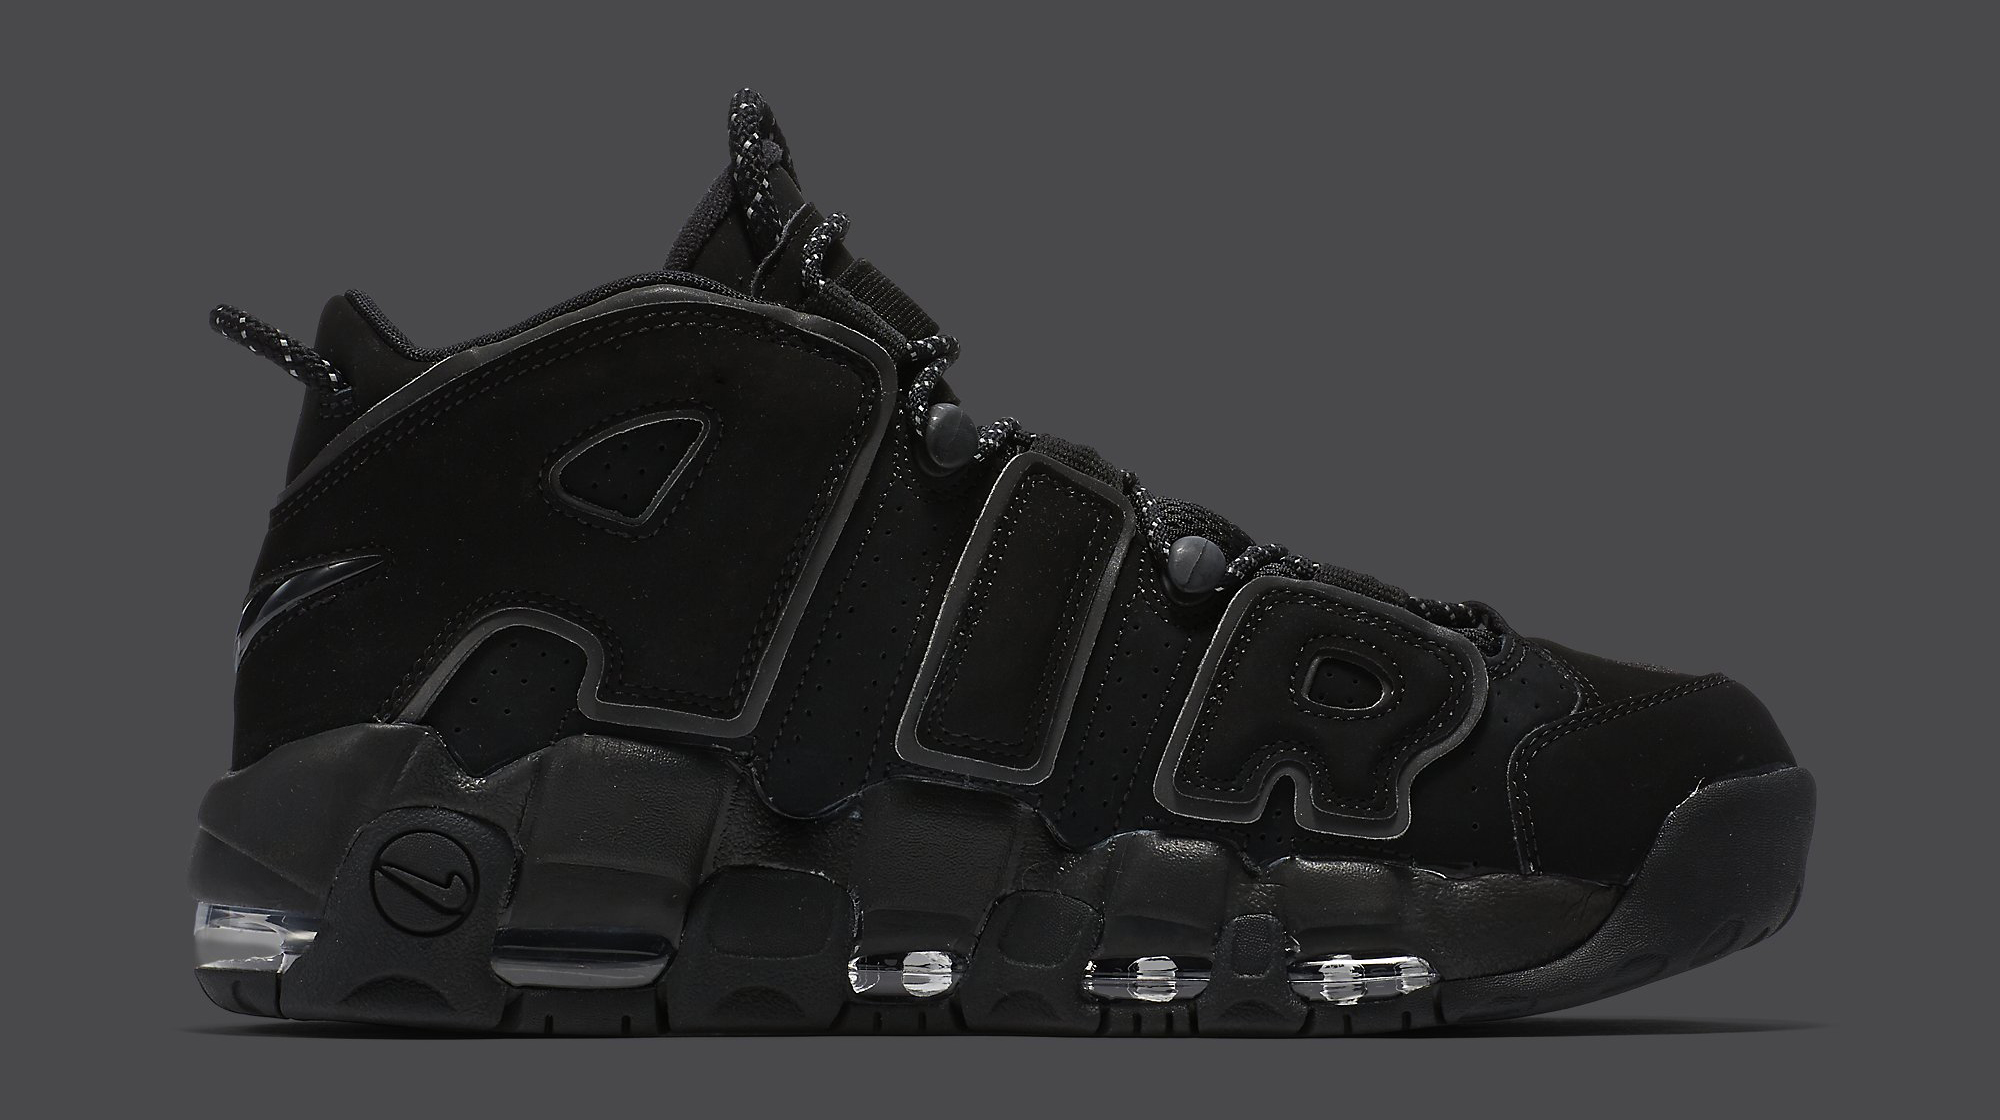 big sale f06c3 352b7 Image via Nike Nike Air More Uptempo Black Reflective 414962-004 Medial